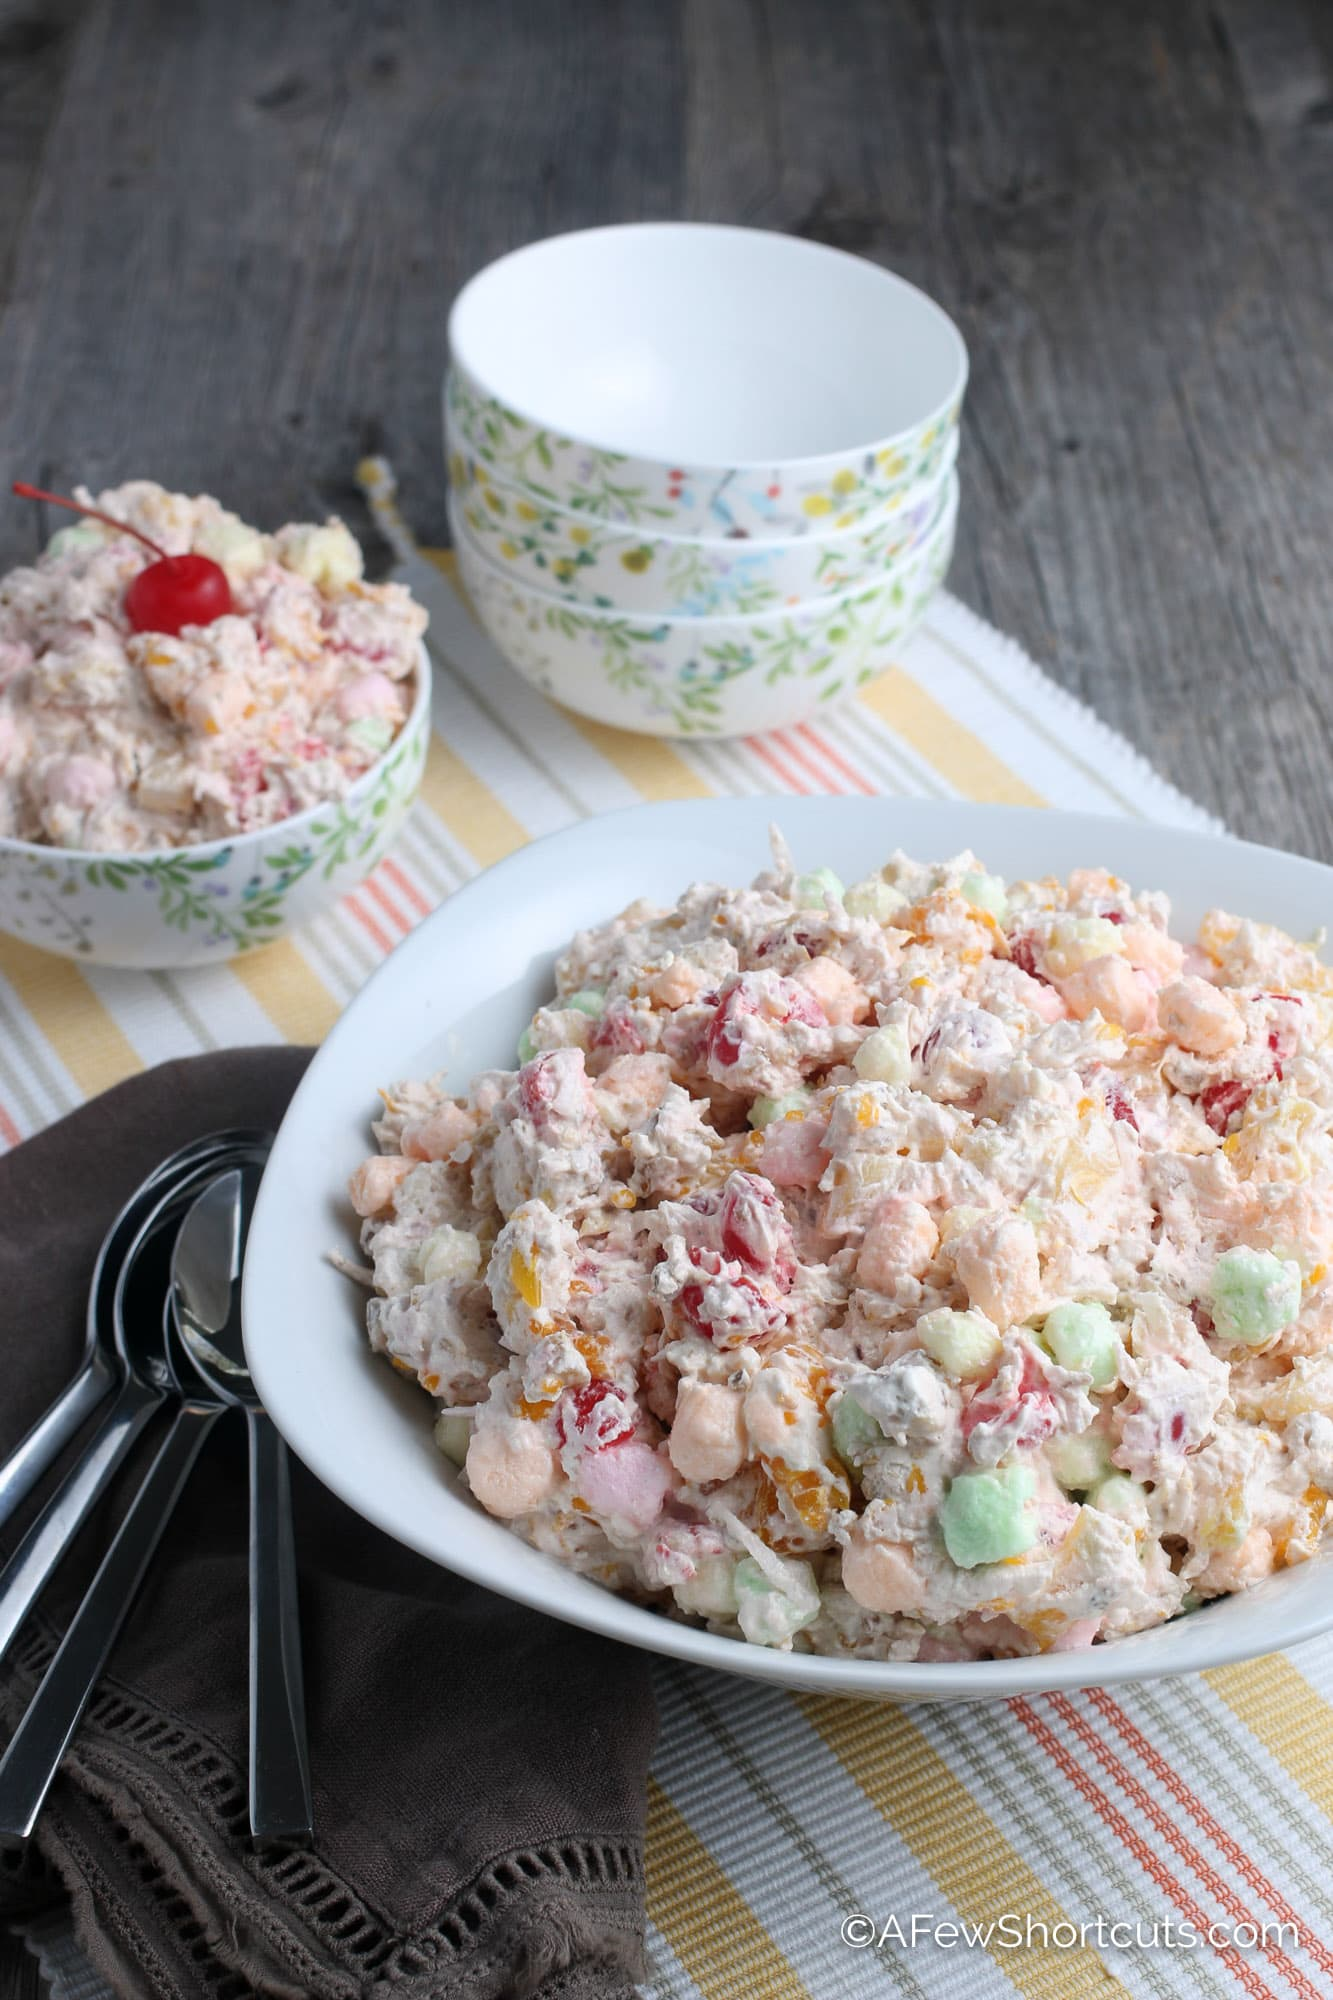 Ambrosia Salad in large bowl with small serving bowls